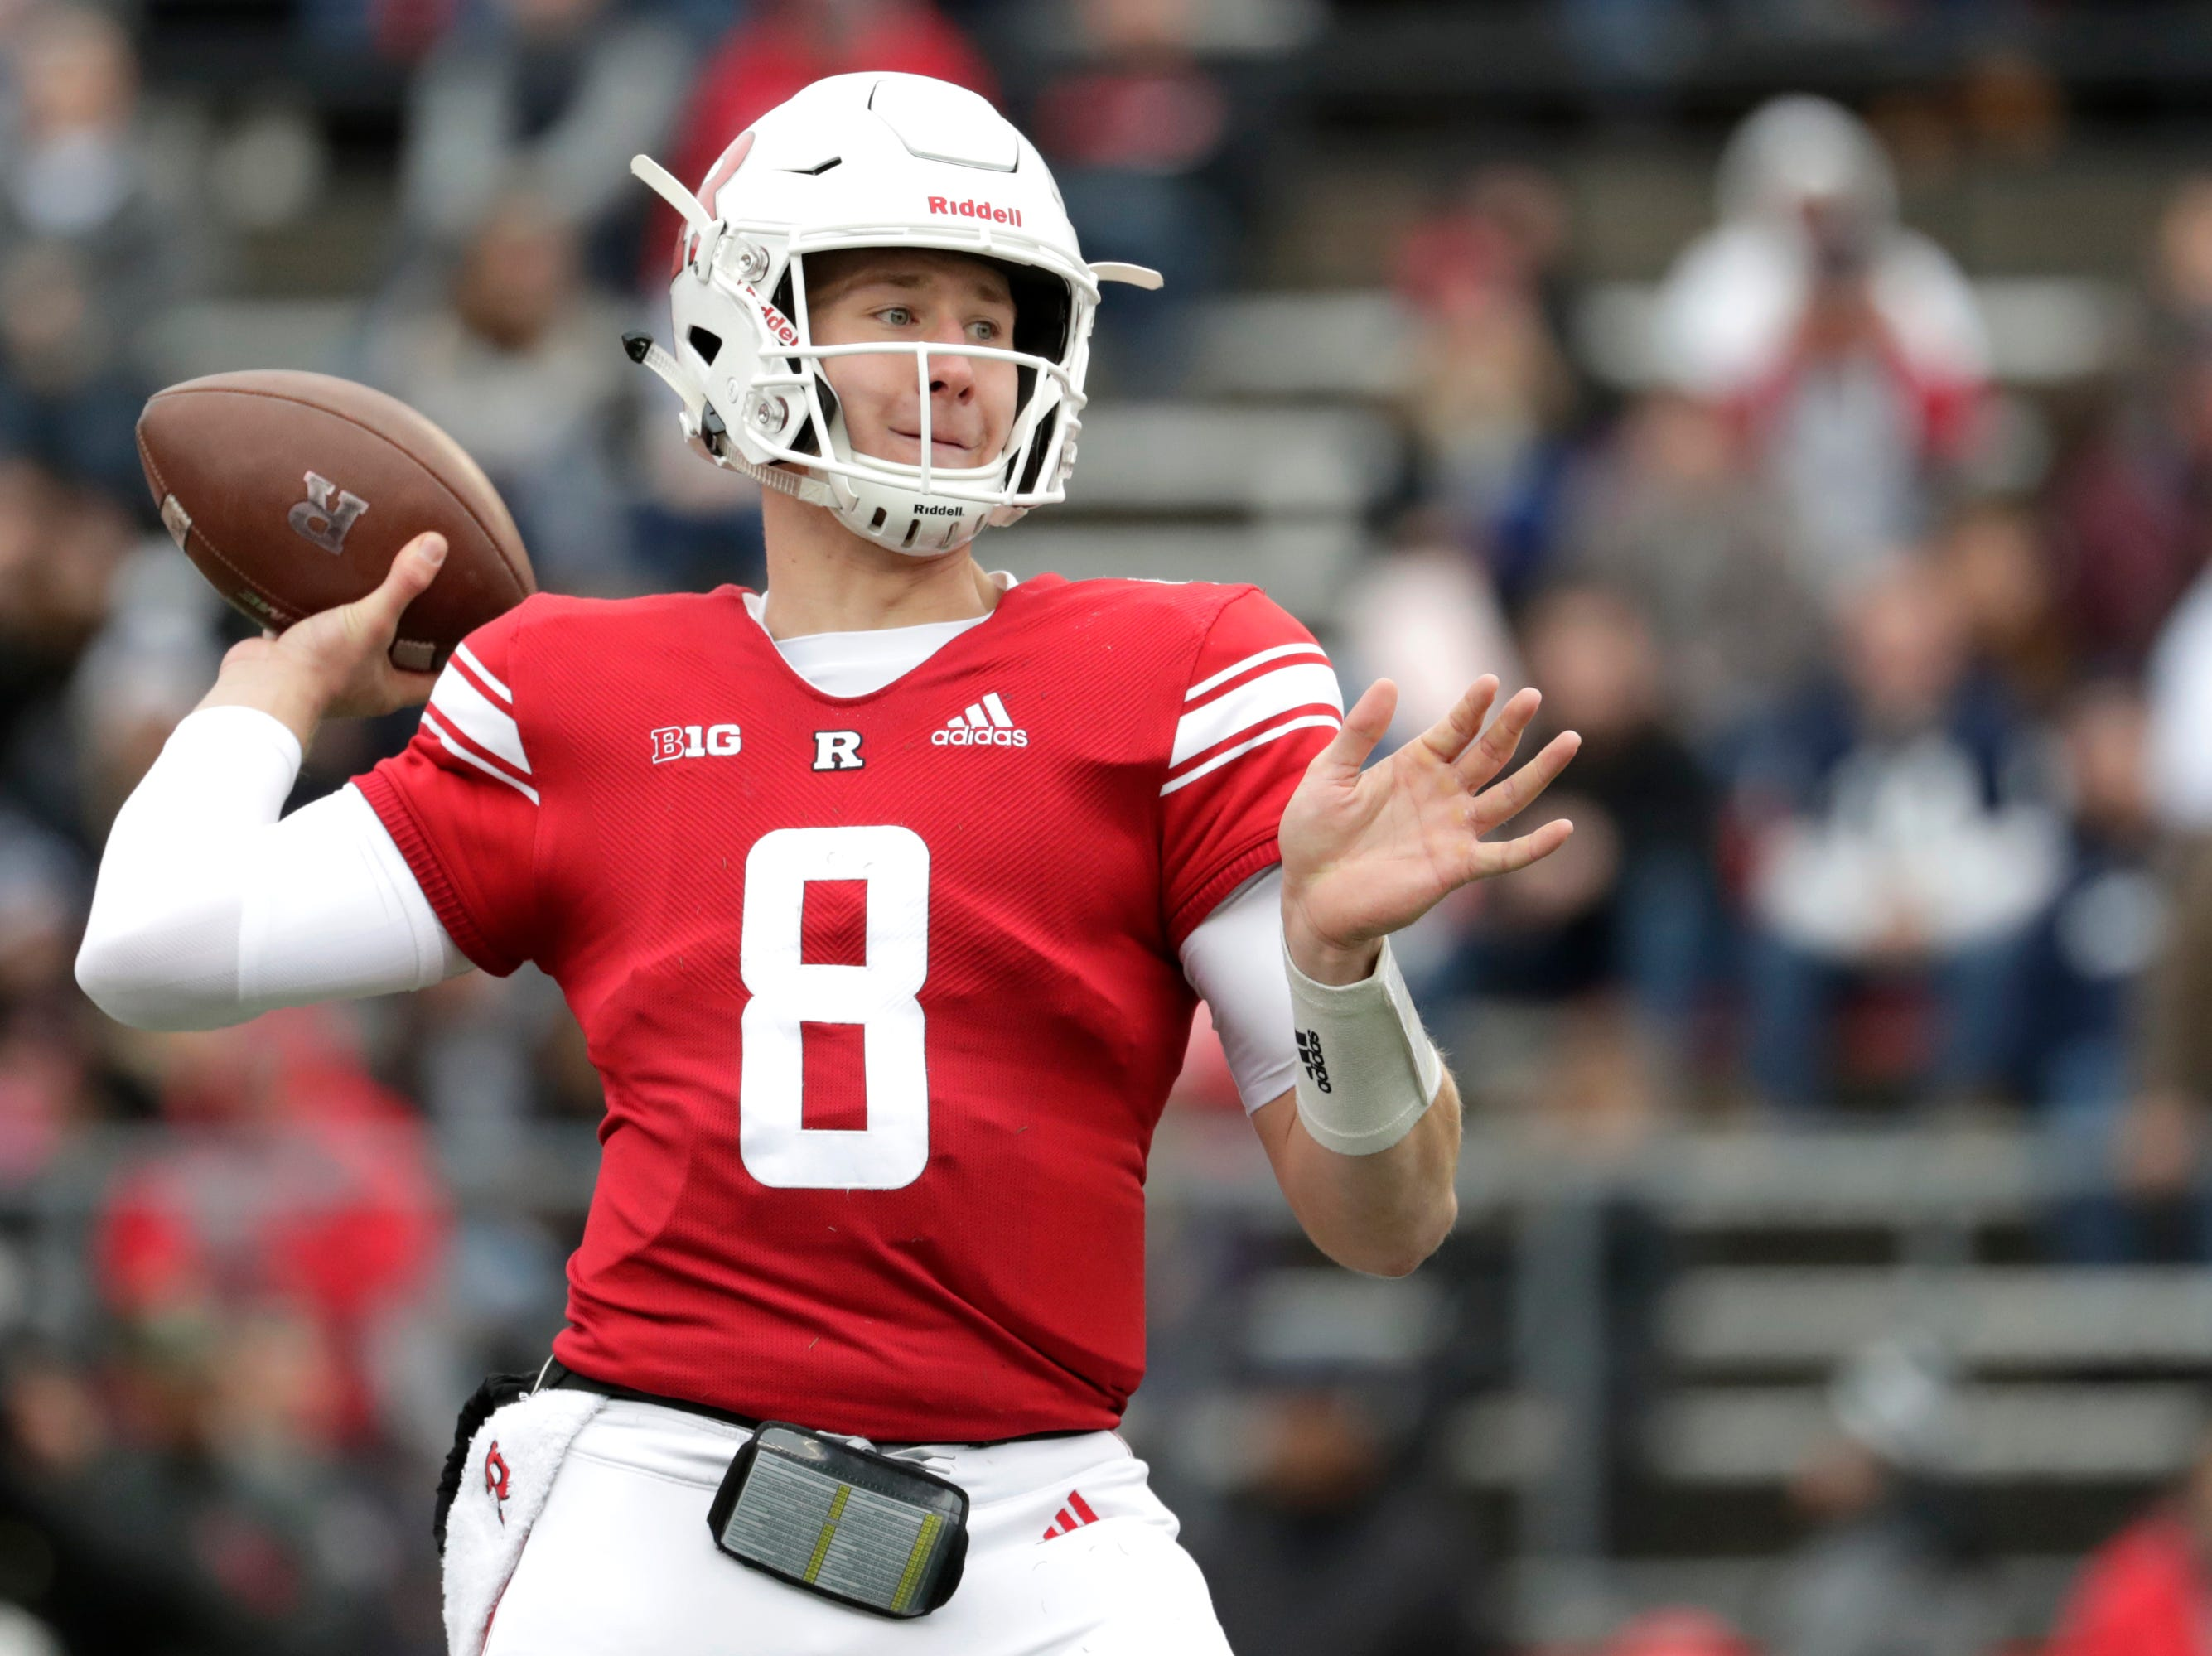 Rutgers quarterback Artur Sitkowski looks to pass against Penn State during the first half of an NCAA college football game, Saturday, Nov. 17, 2018, in Piscataway, N.J. Penn State's safety Garrett Taylor intercepted the pass on the play. (AP Photo/Julio Cortez)